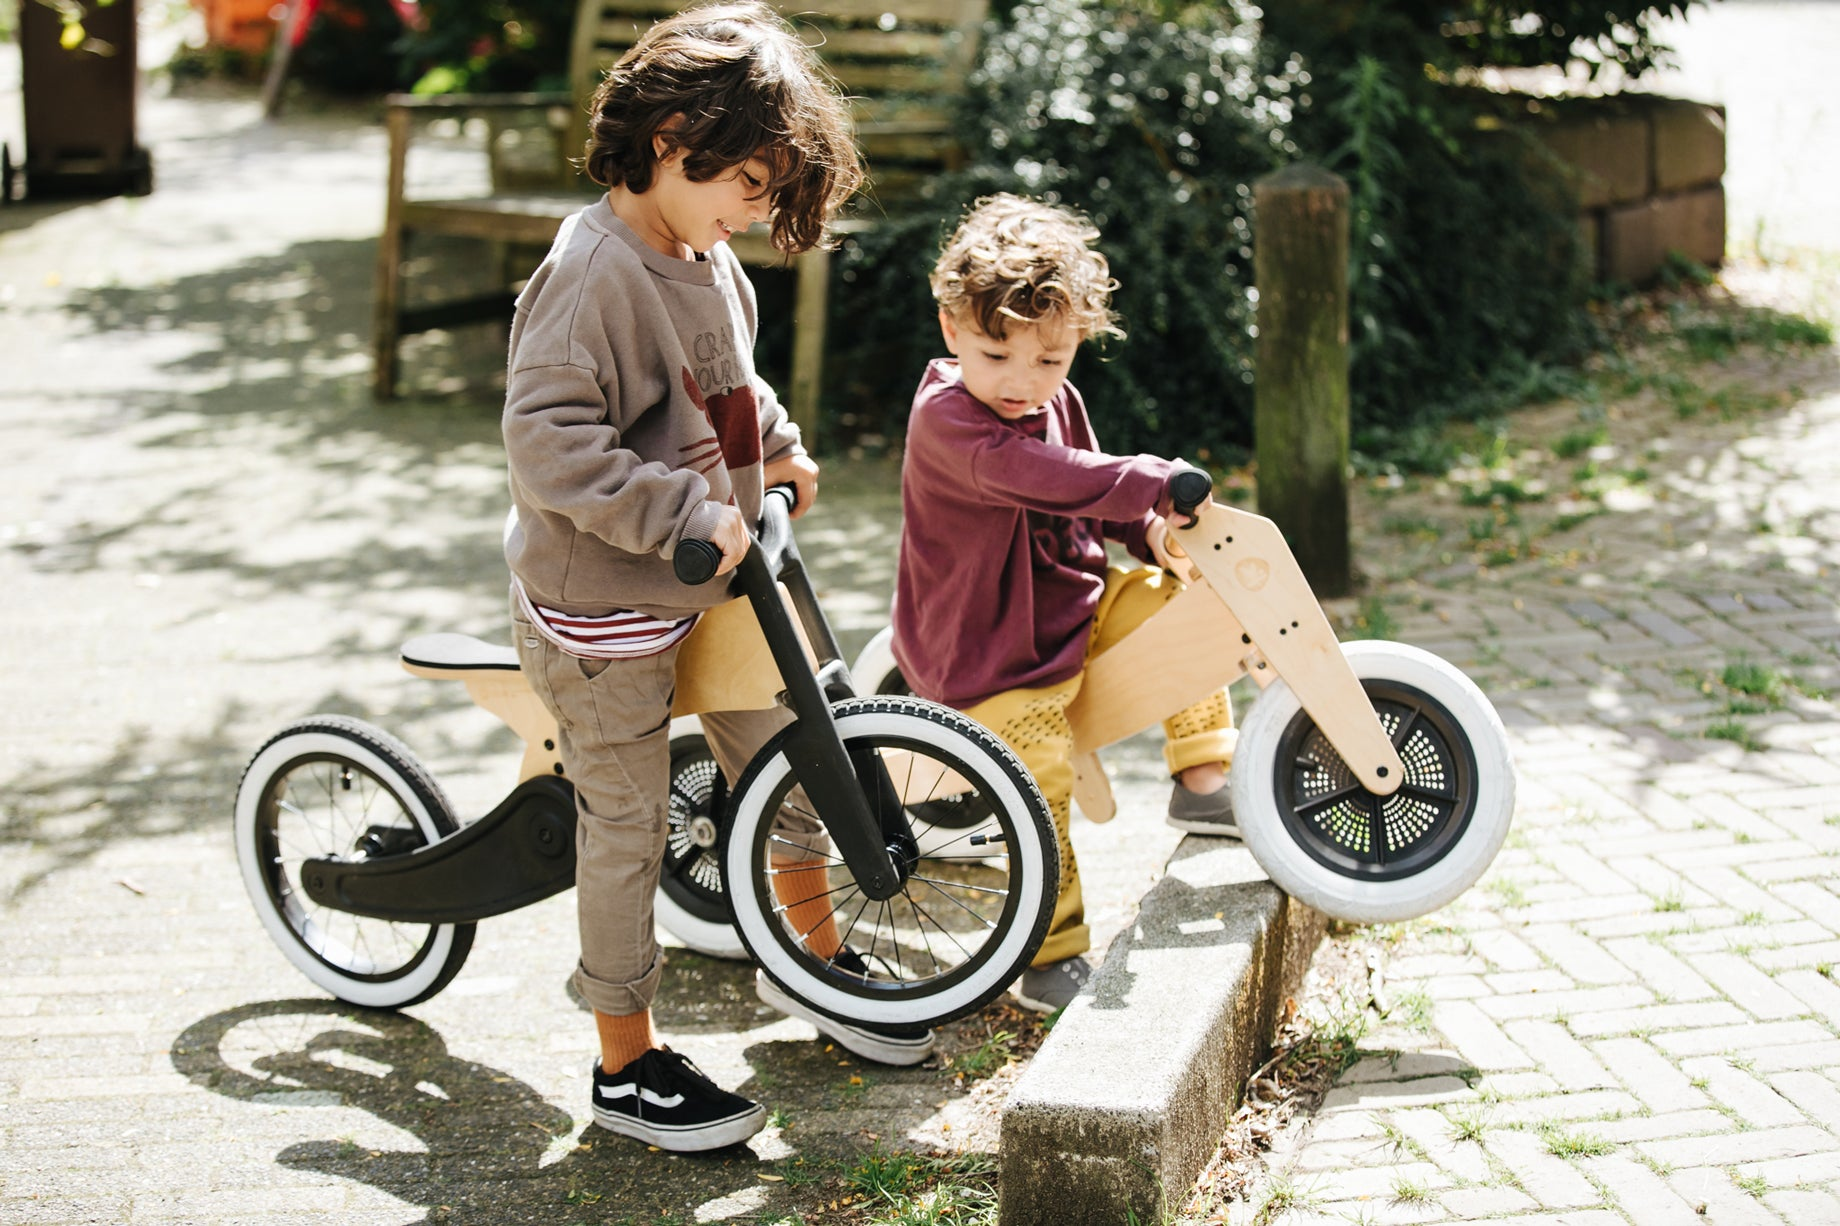 Draisienne and tricycle